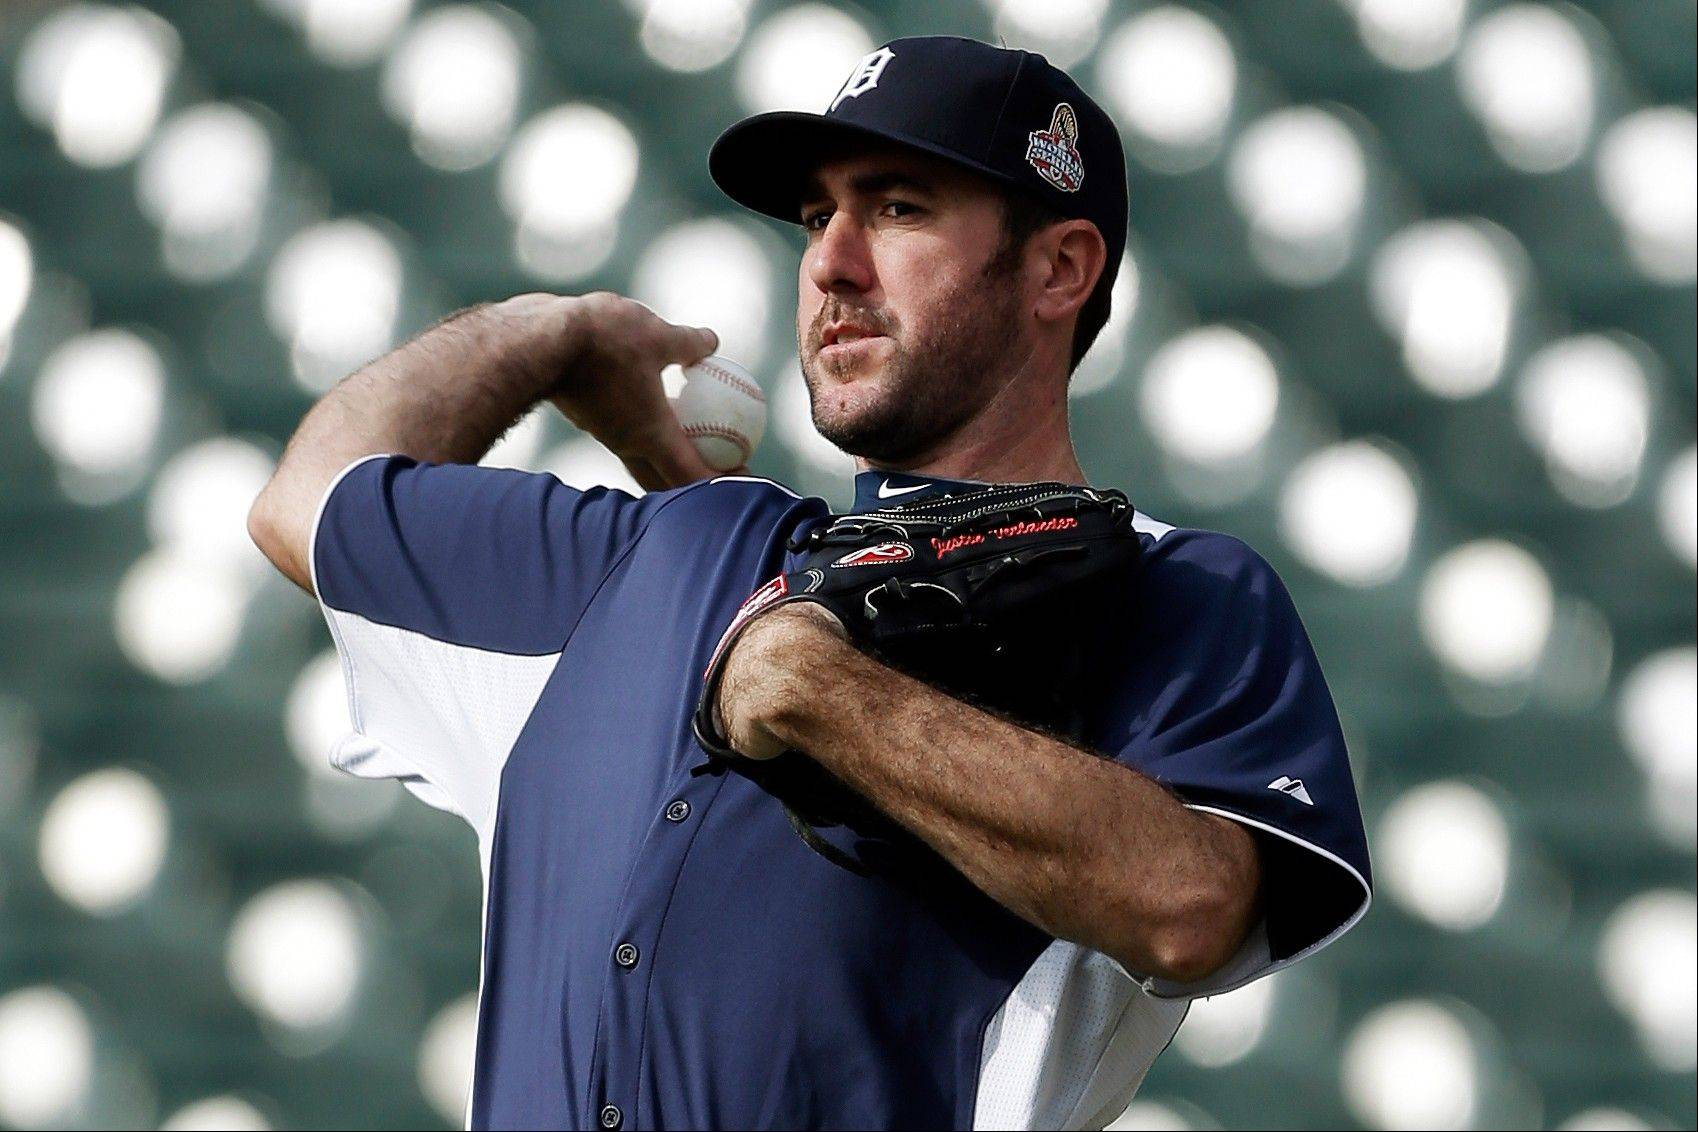 Detroit Tigers pitcher Justin Verlander throws Monday during a workout at Comerica Park in Detroit. Verlander is set to pitch in his second World Series.